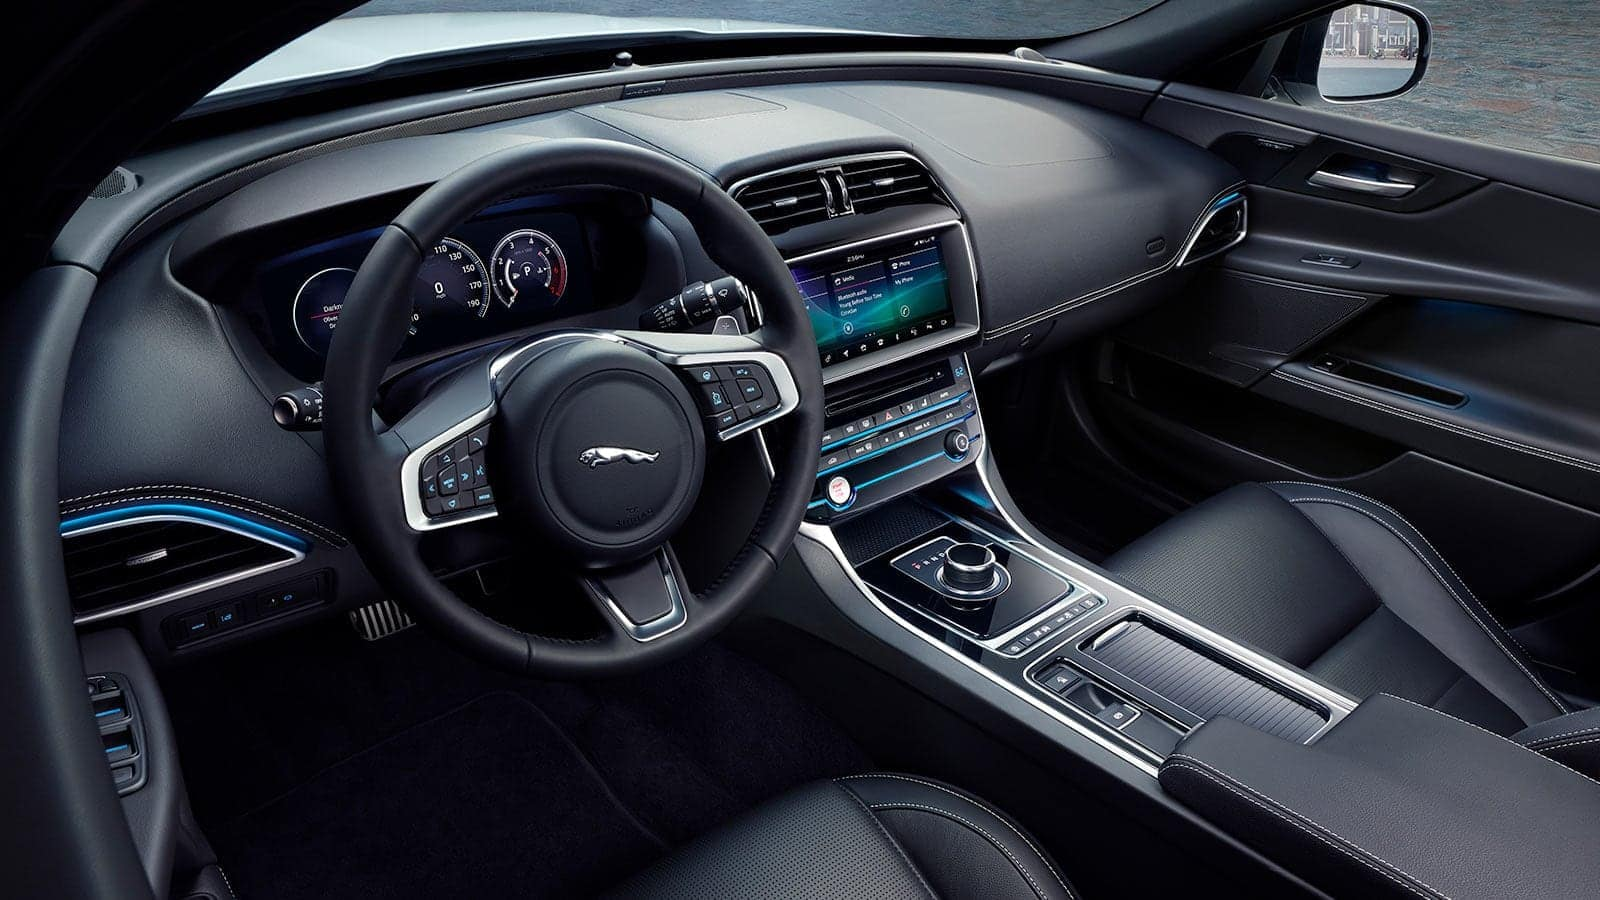 2019 Jaguar XE interior technology